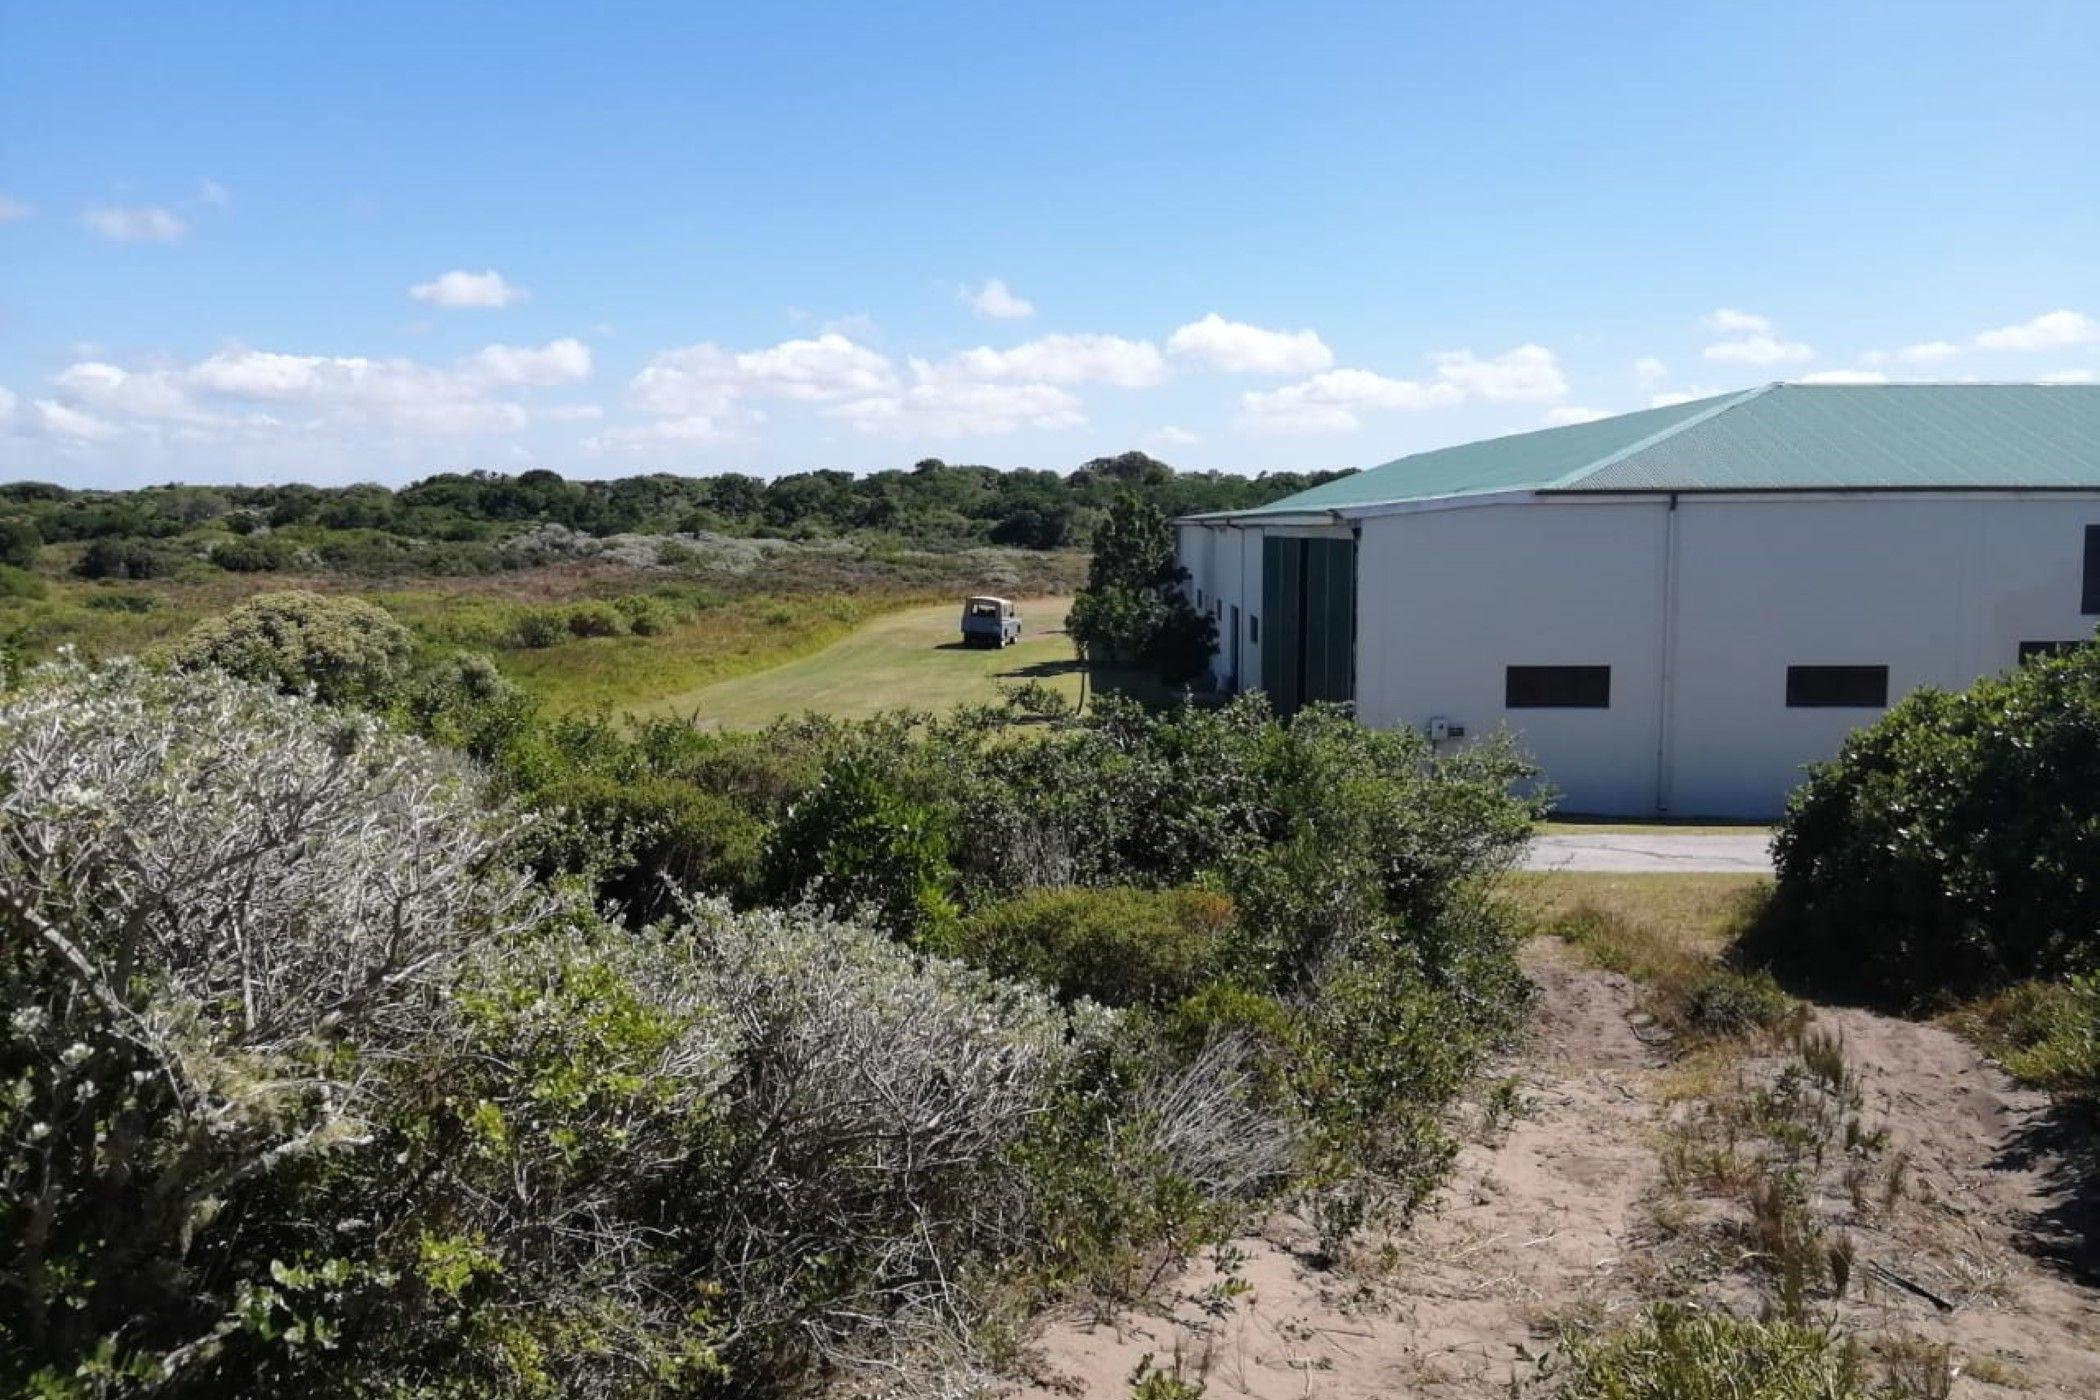 8246 m² vacant land for sale in St Francis Field